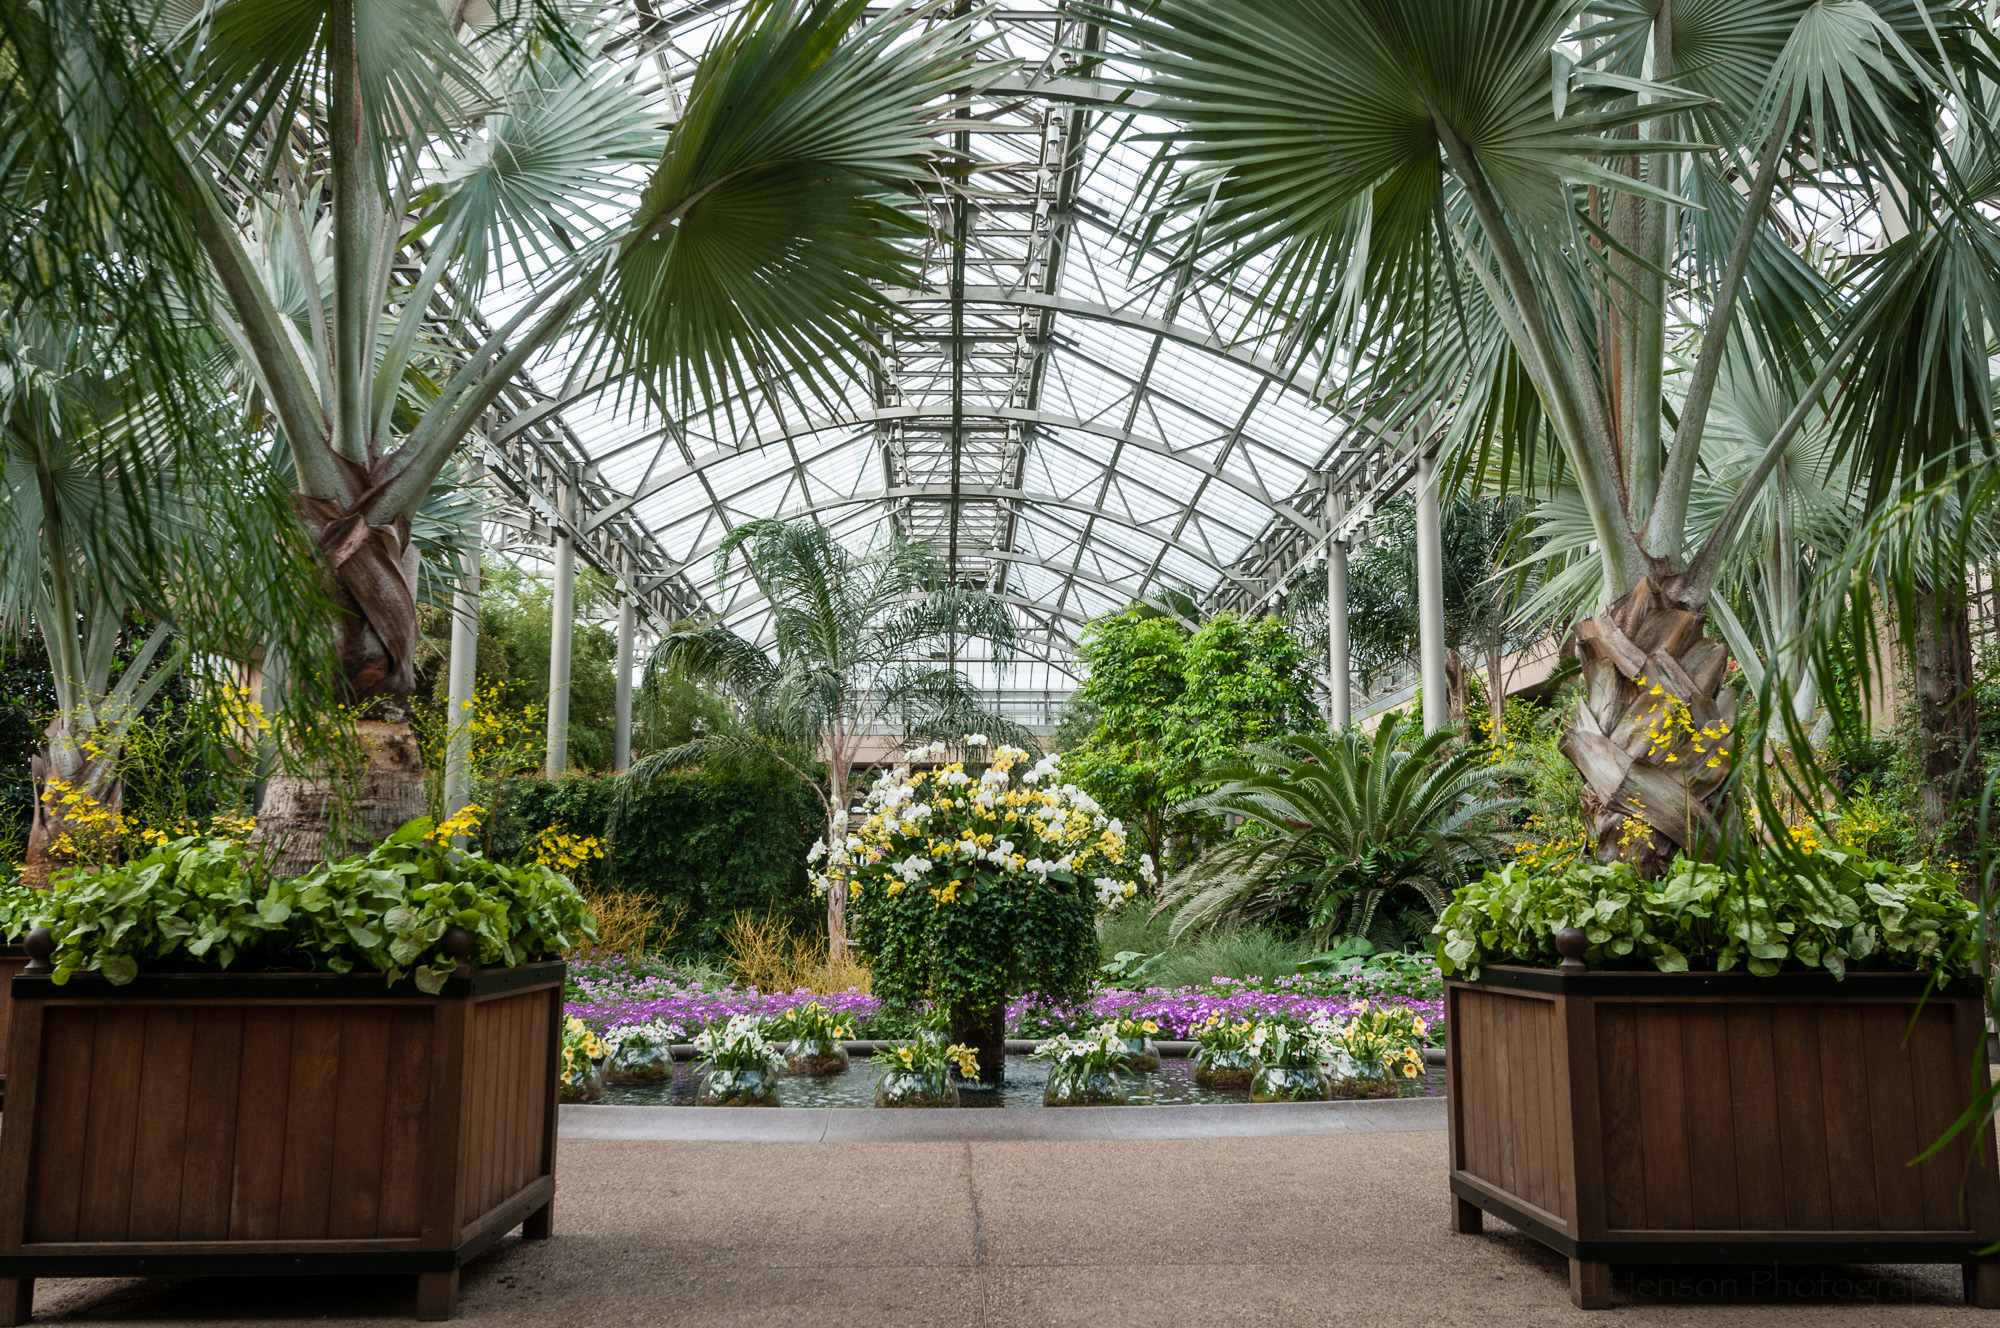 A view inside the Conservatory